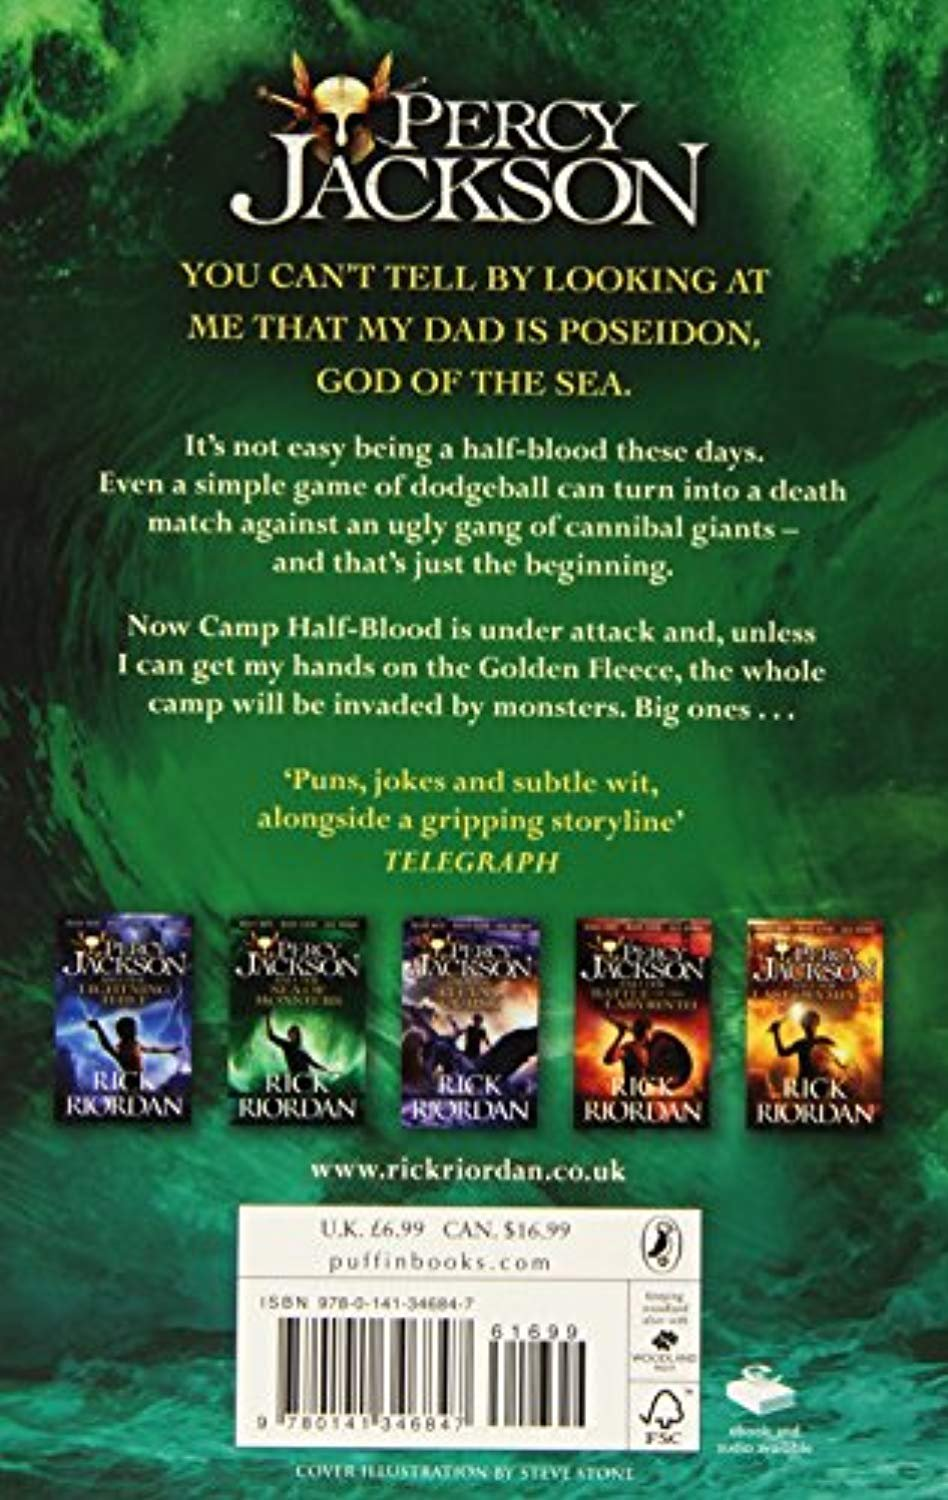 Percy Jackson and the Sea of Monsters (Book 2) (Paperback)